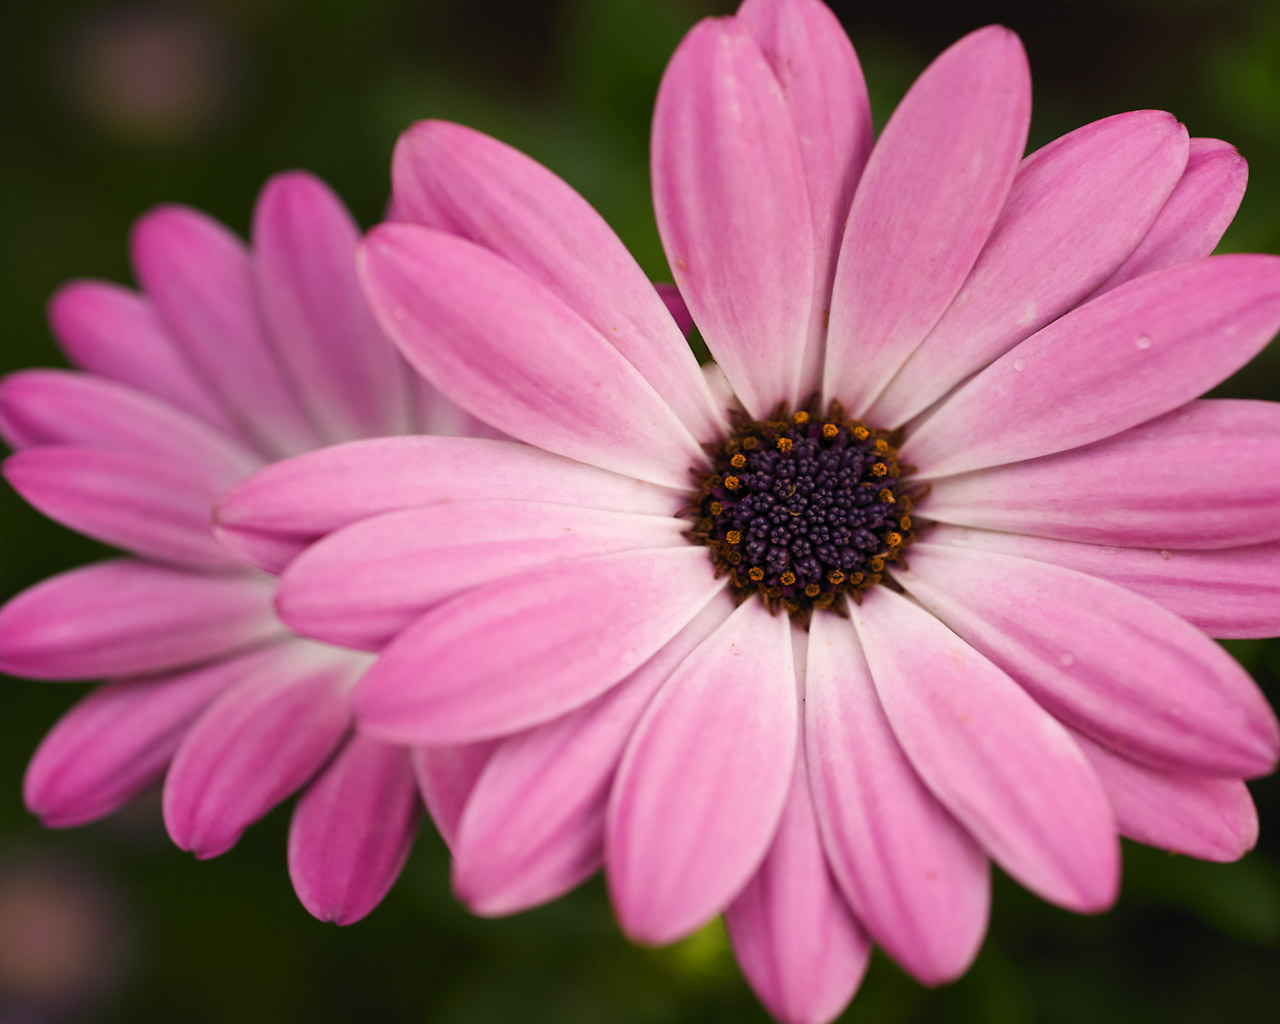 Pink flowers by name 2 background hdflowerwallpaper pink flowers by name hd wallpaper mightylinksfo